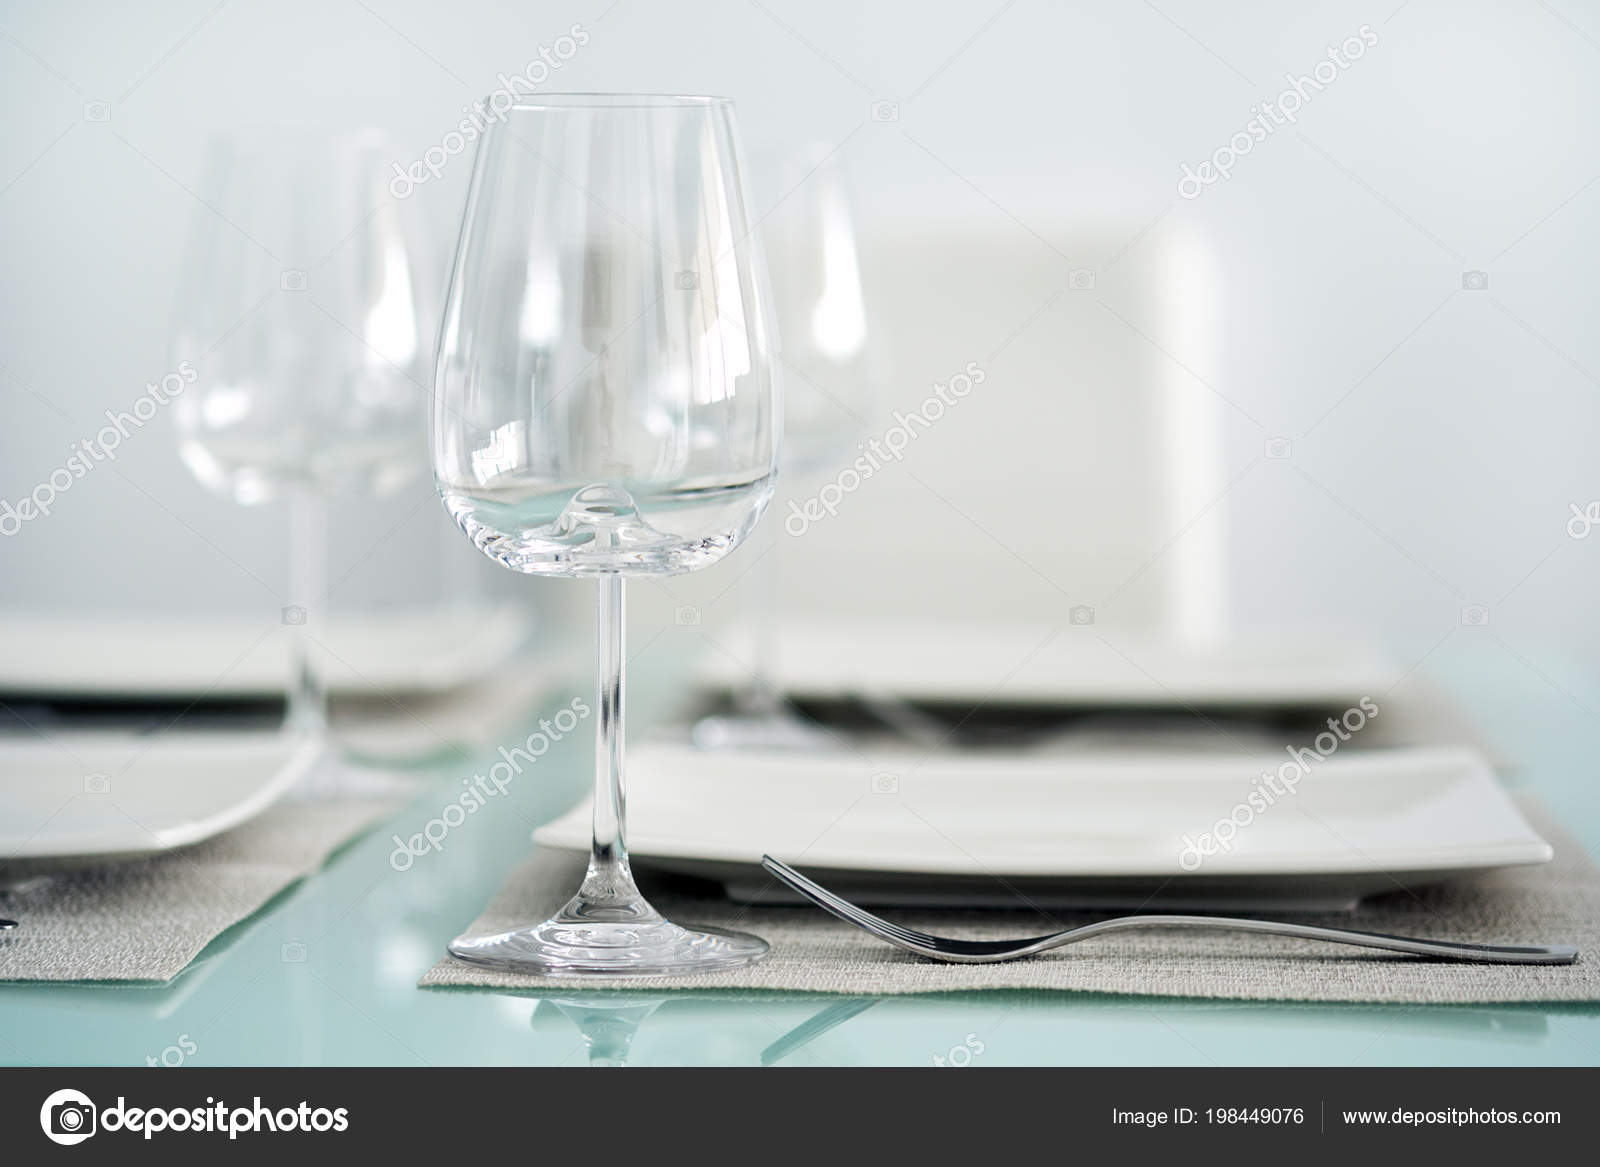 Table Setting Wine Glasses Cutlery Plates Stock Photo Amoklv - Wine glass table setting